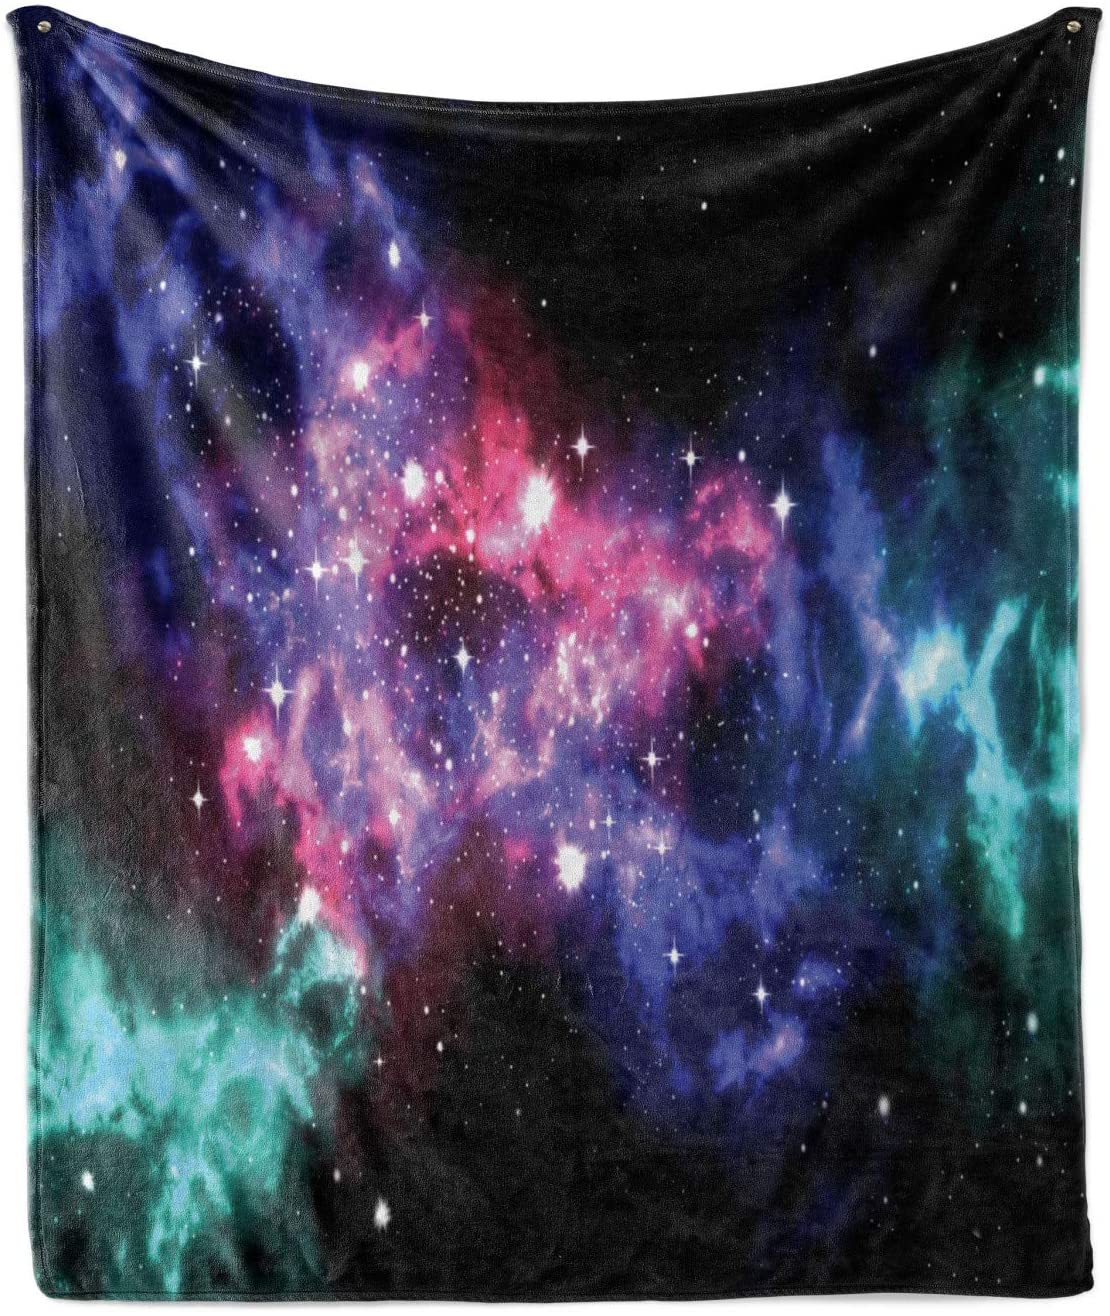 Ambesonne Outer Space Soft Flannel Fleece Throw Blanket, Stars and Dusty Gas Cloud in Planetary Cosmos Universe Print, Cozy Plush for Indoor and Outdoor Use, 50